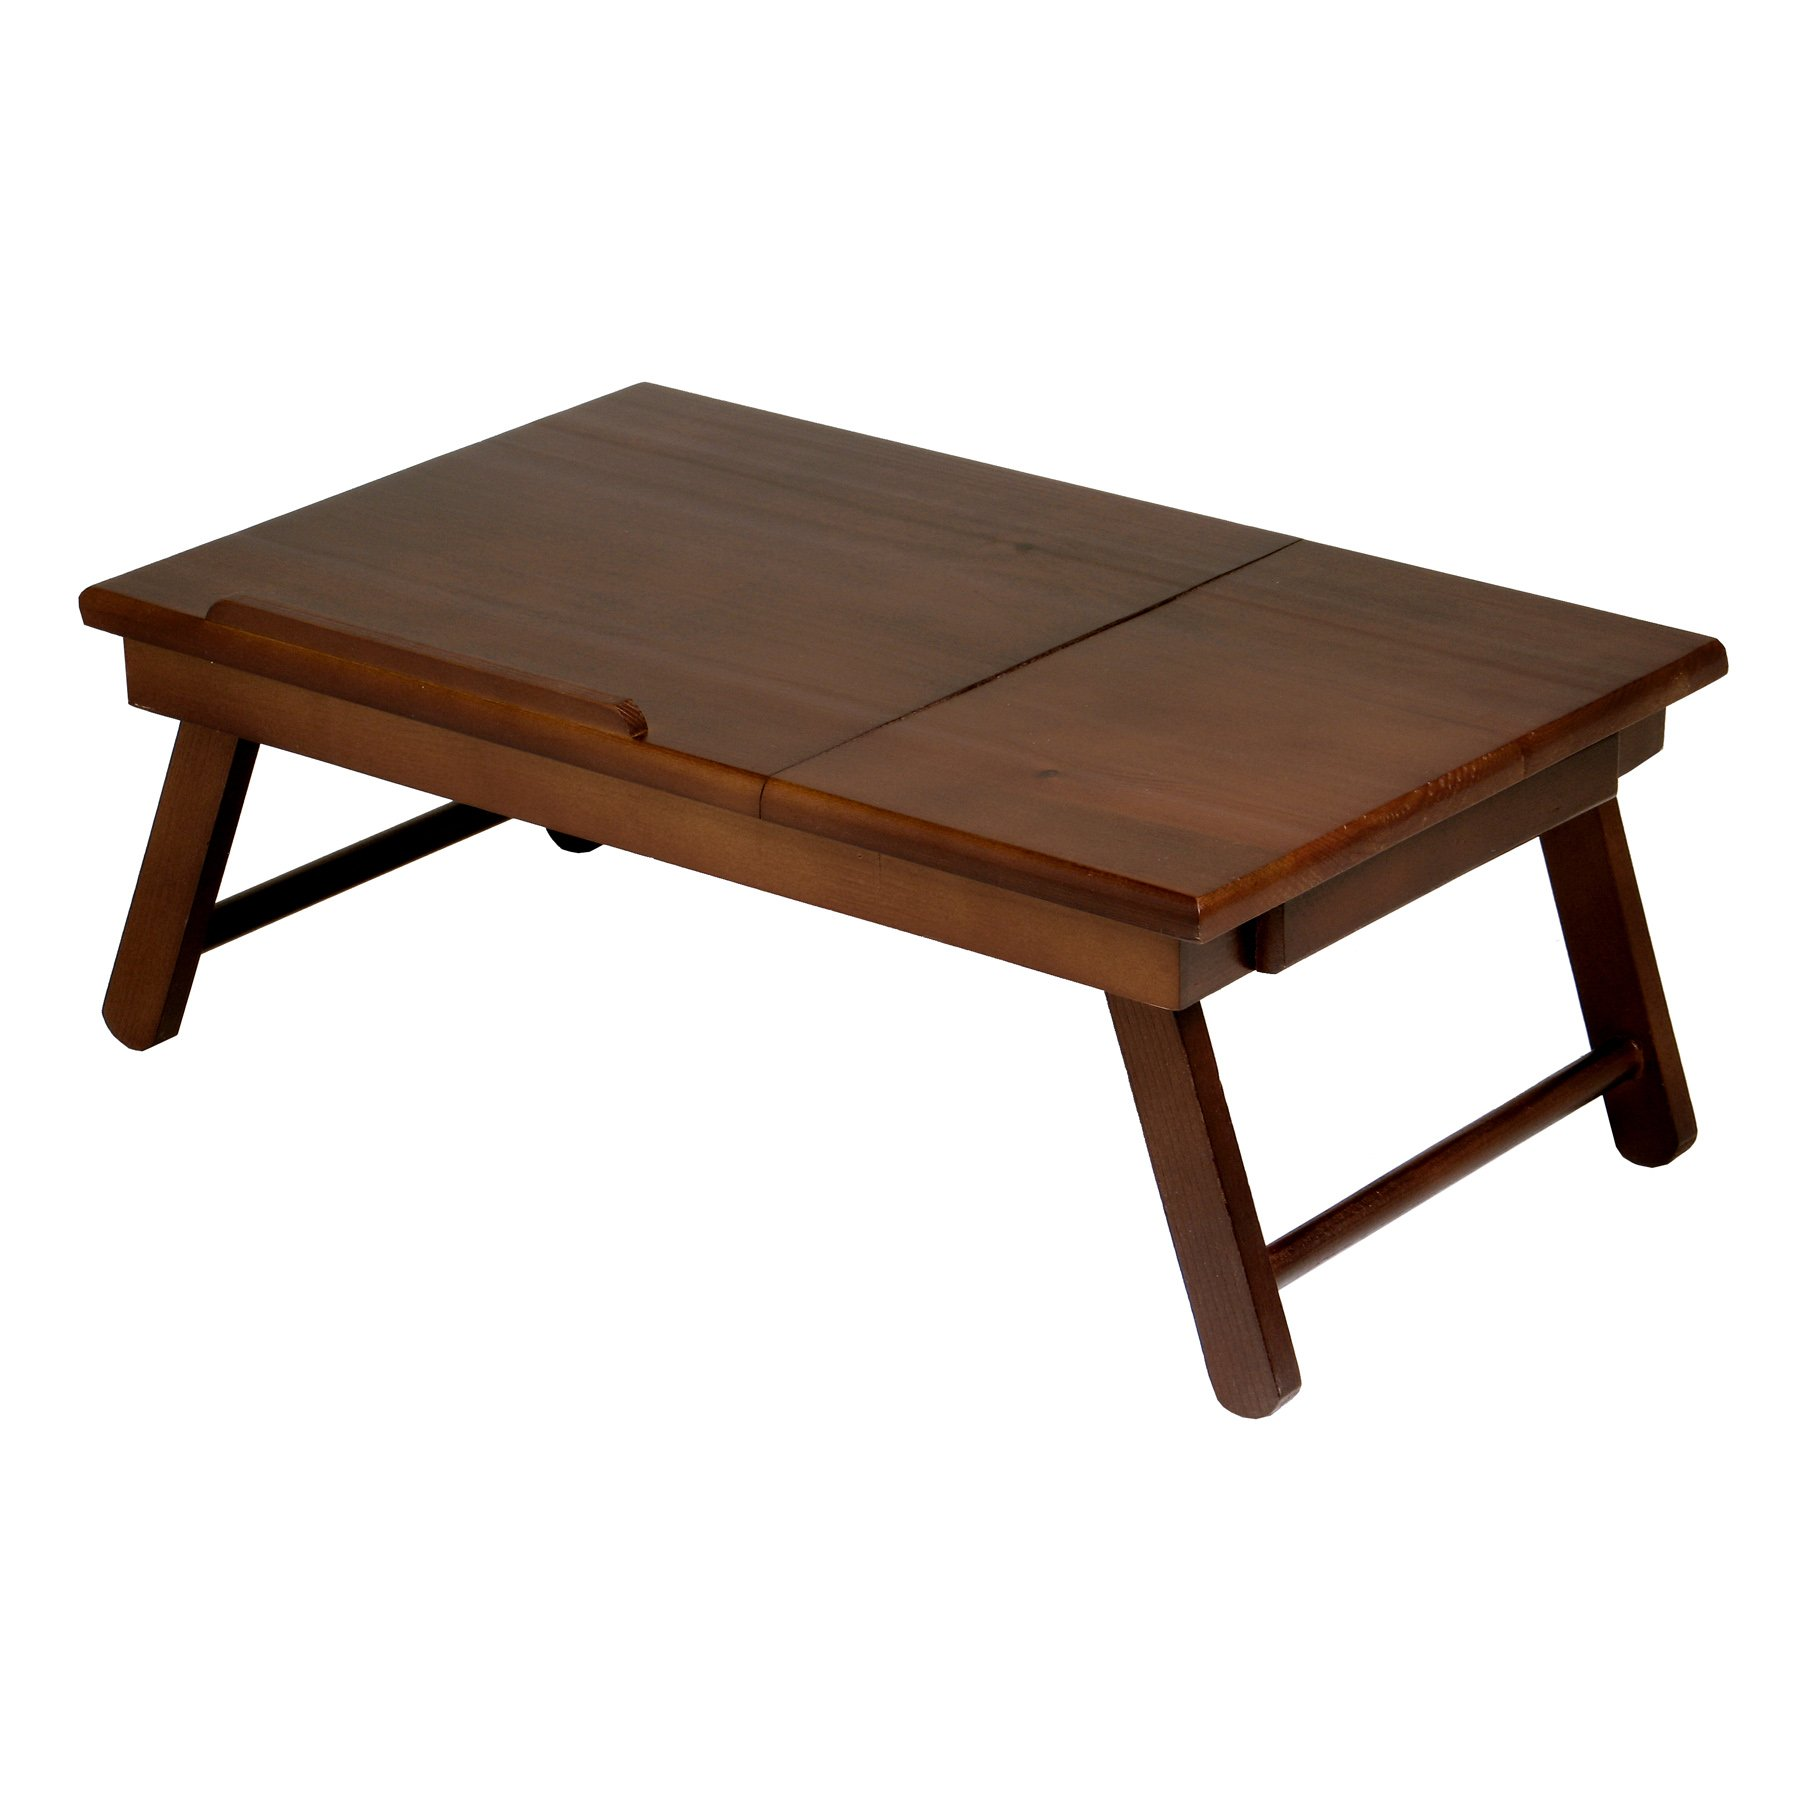 Winsome Wood 94623 Alden Bed Tray, Walnut by Winsome Wood